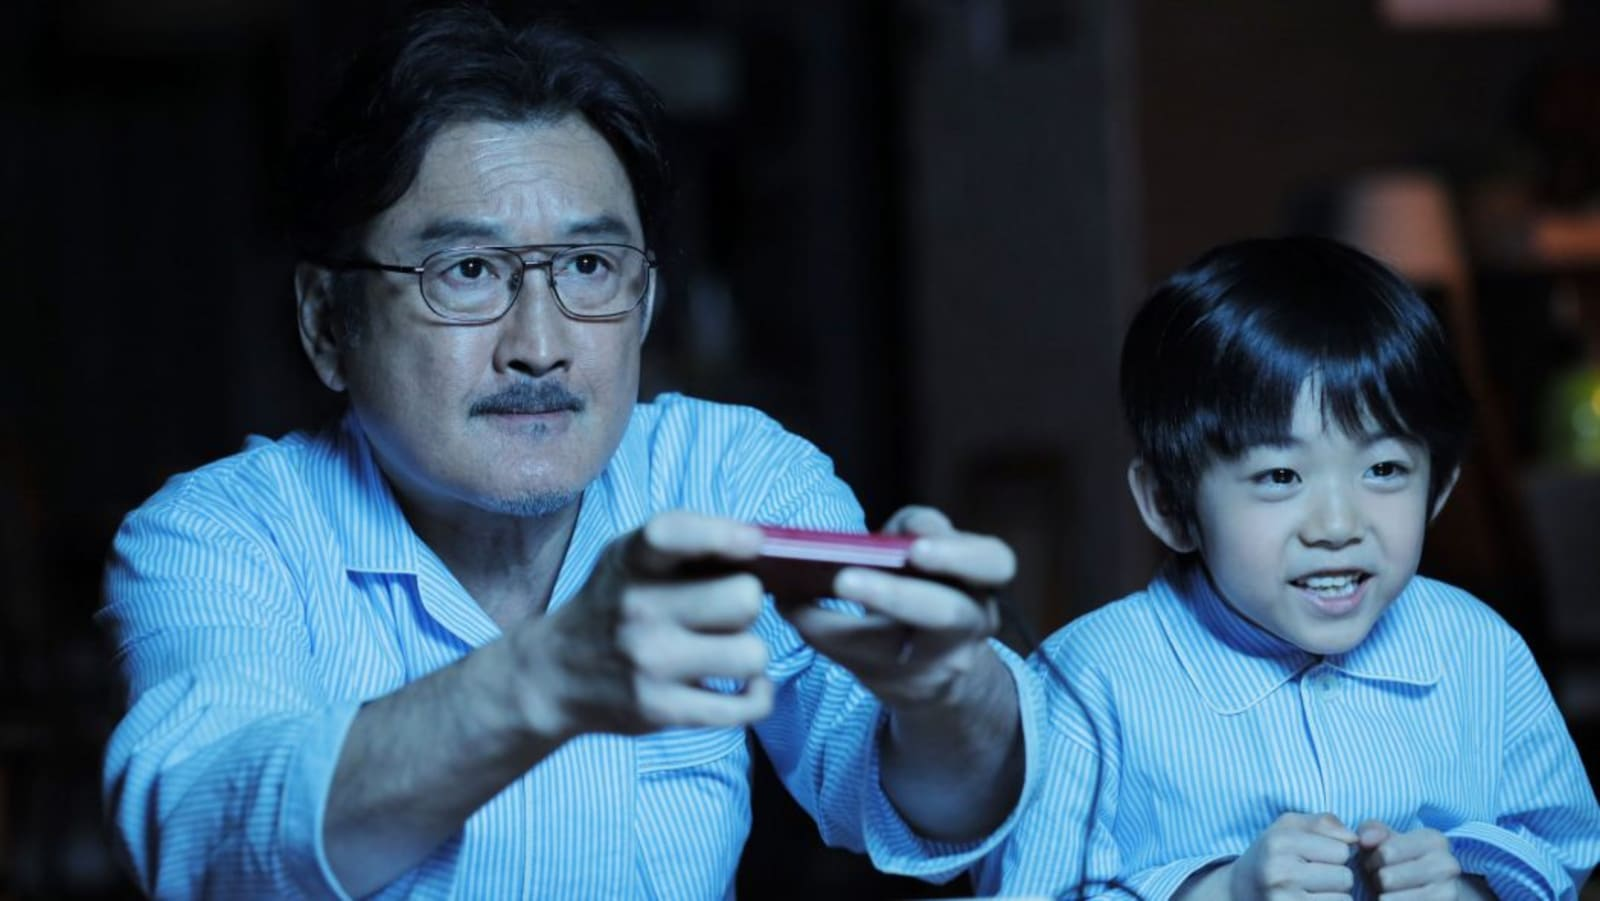 'Brave Father Online' is a 'Final Fantasy' movie with heart